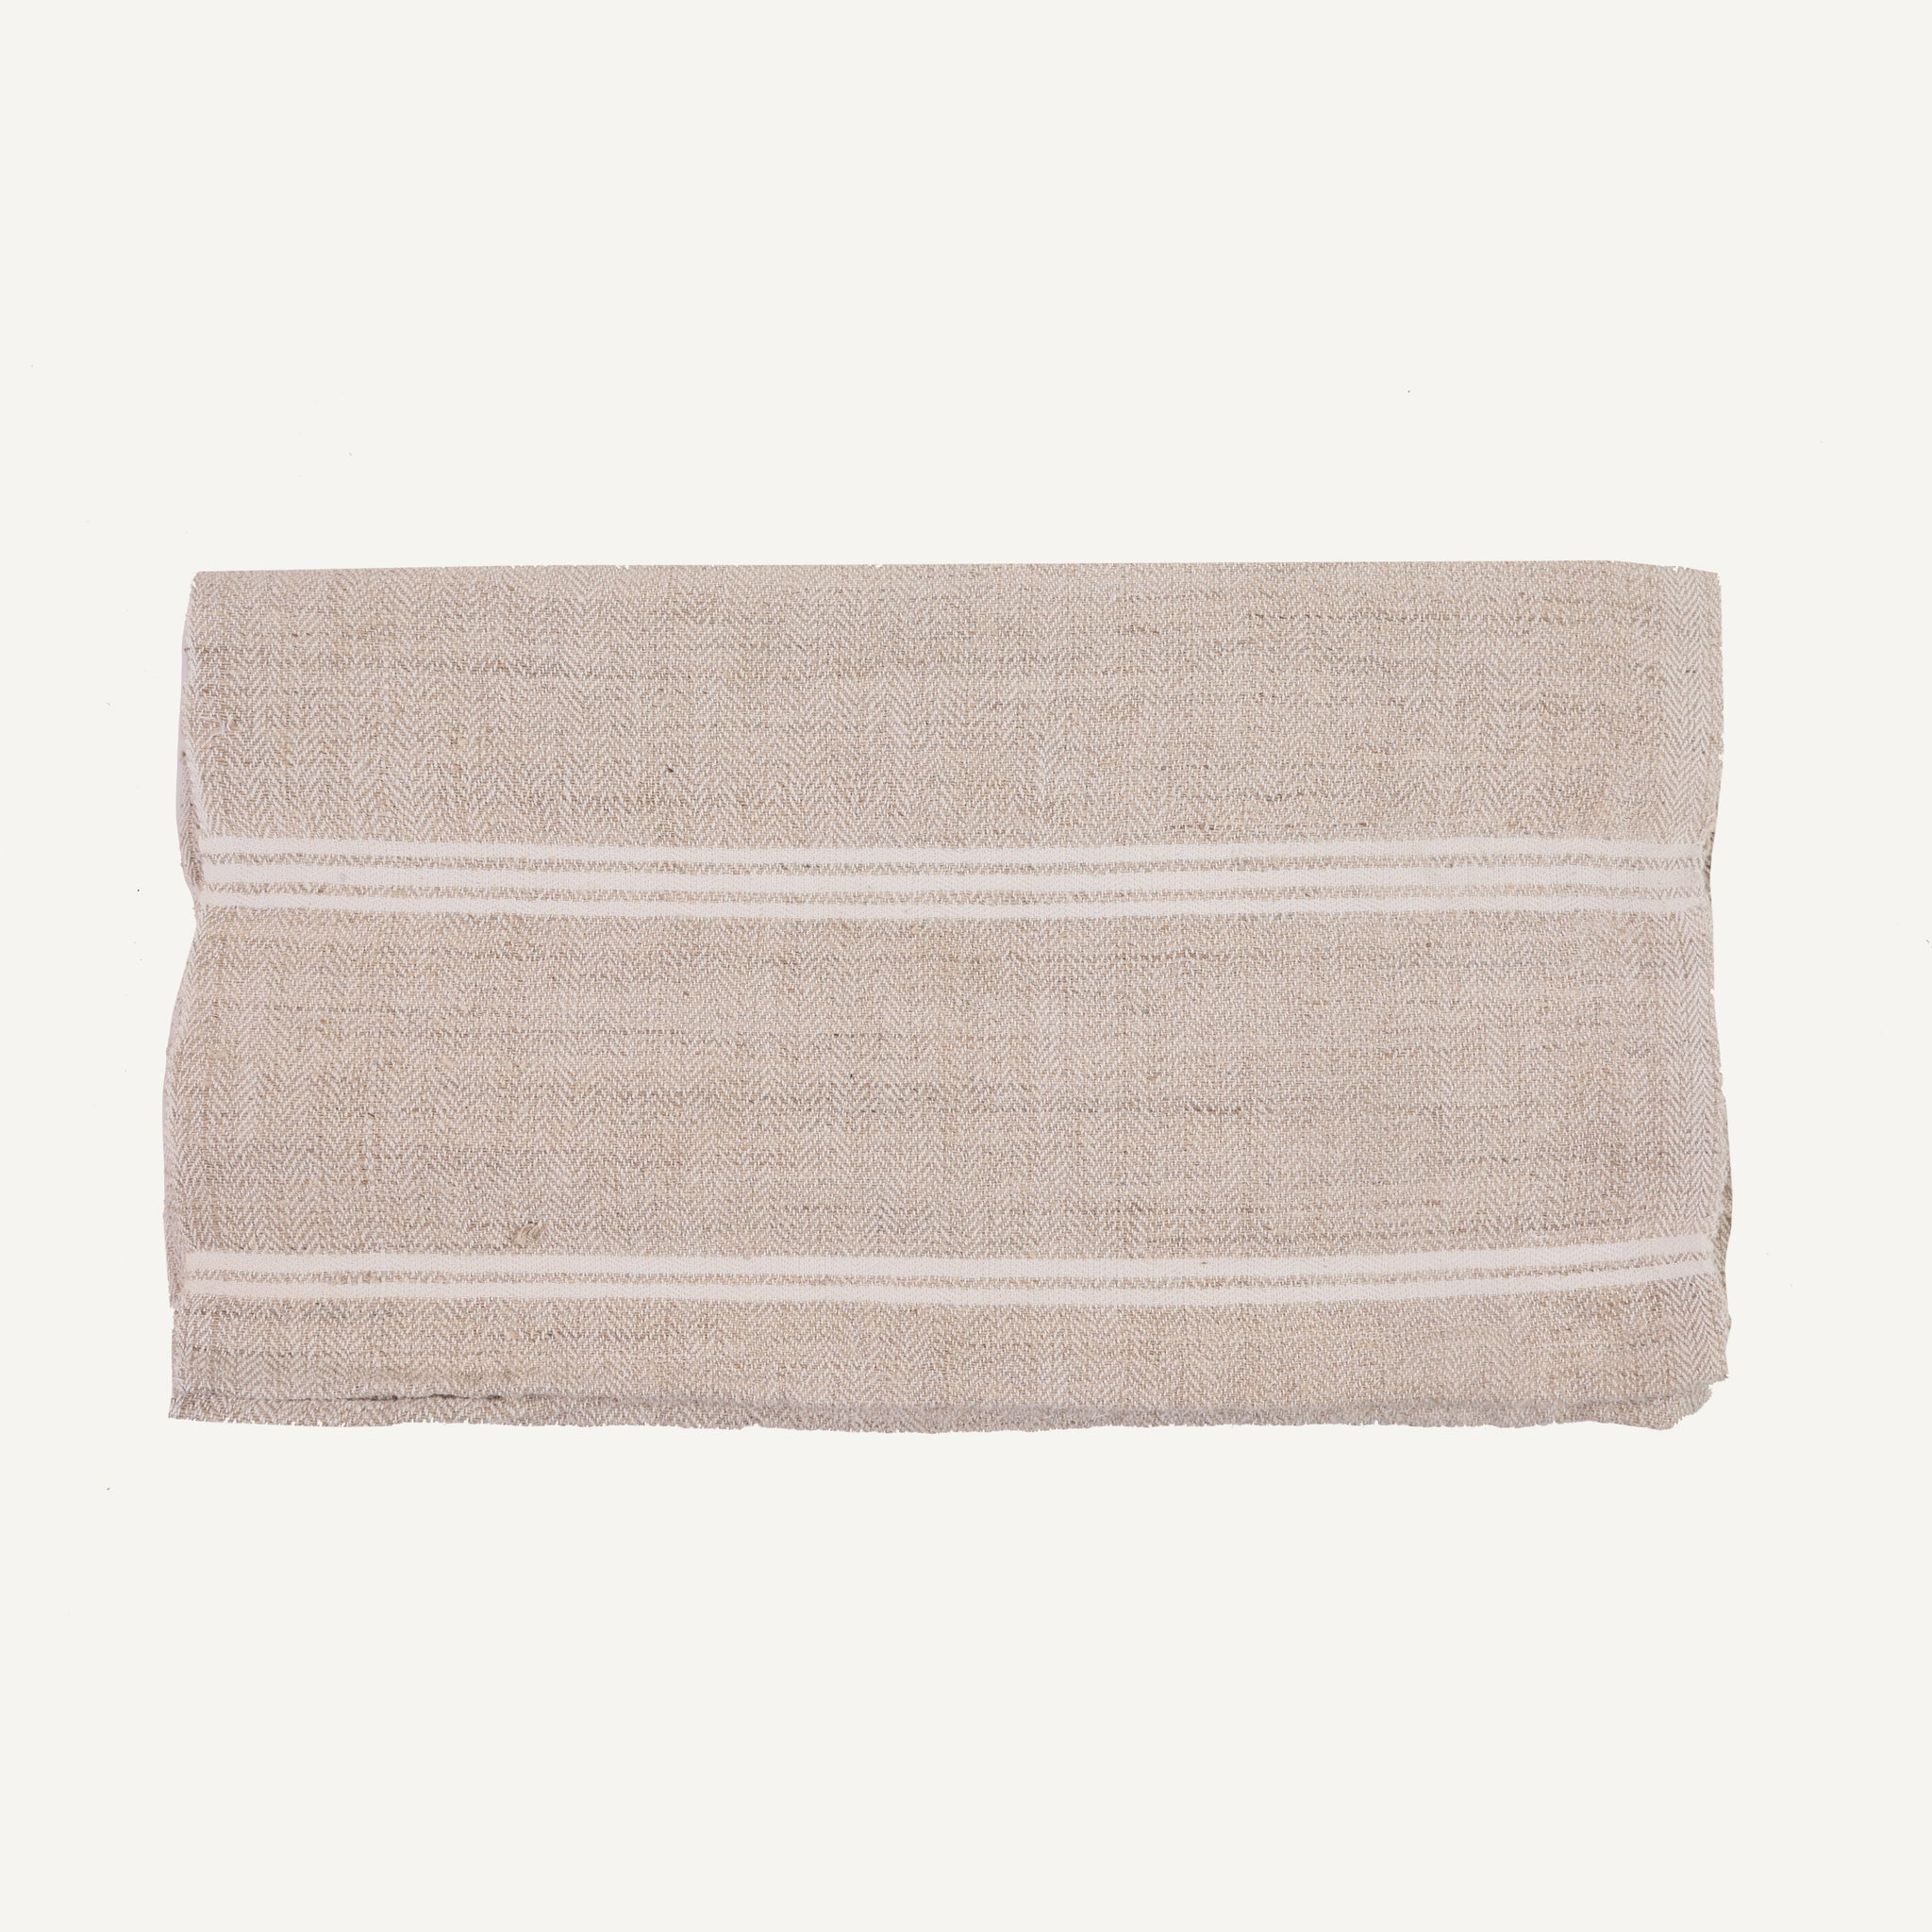 VINTAGE STRIPED HEMP TOWEL